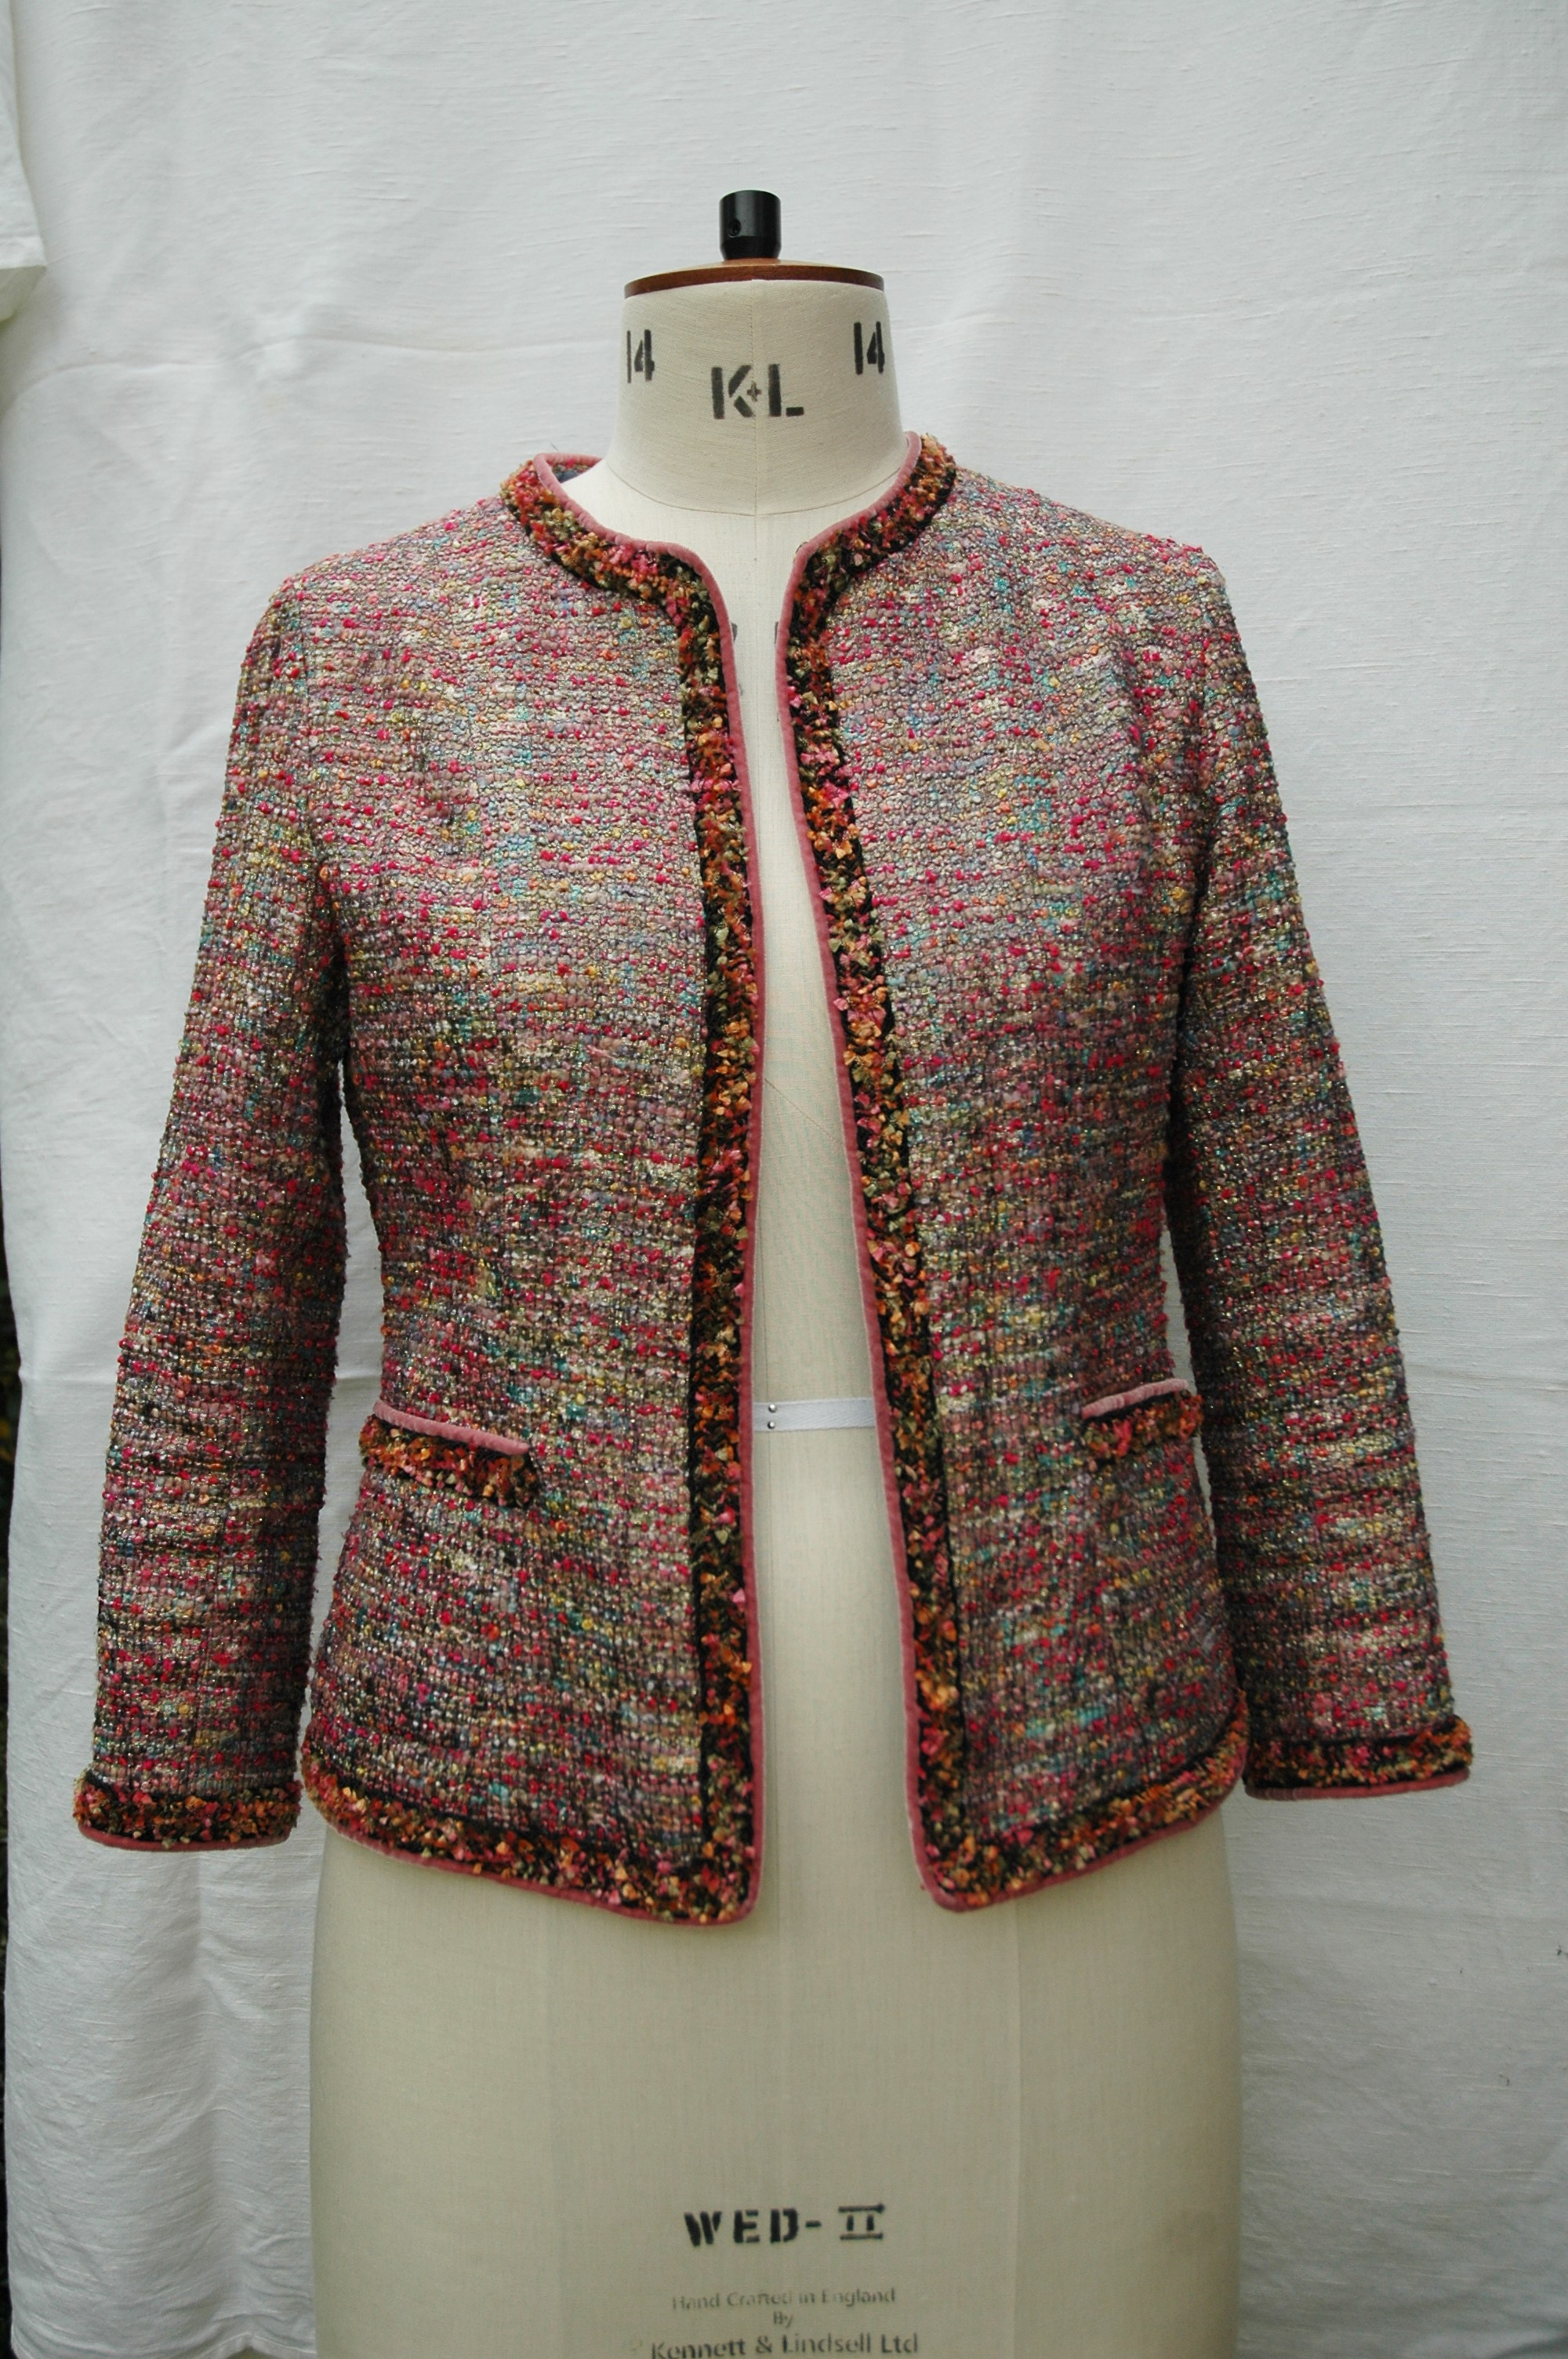 Chanel Style Boucle Jacket U2013 Sewing Projects | BurdaStyle.com